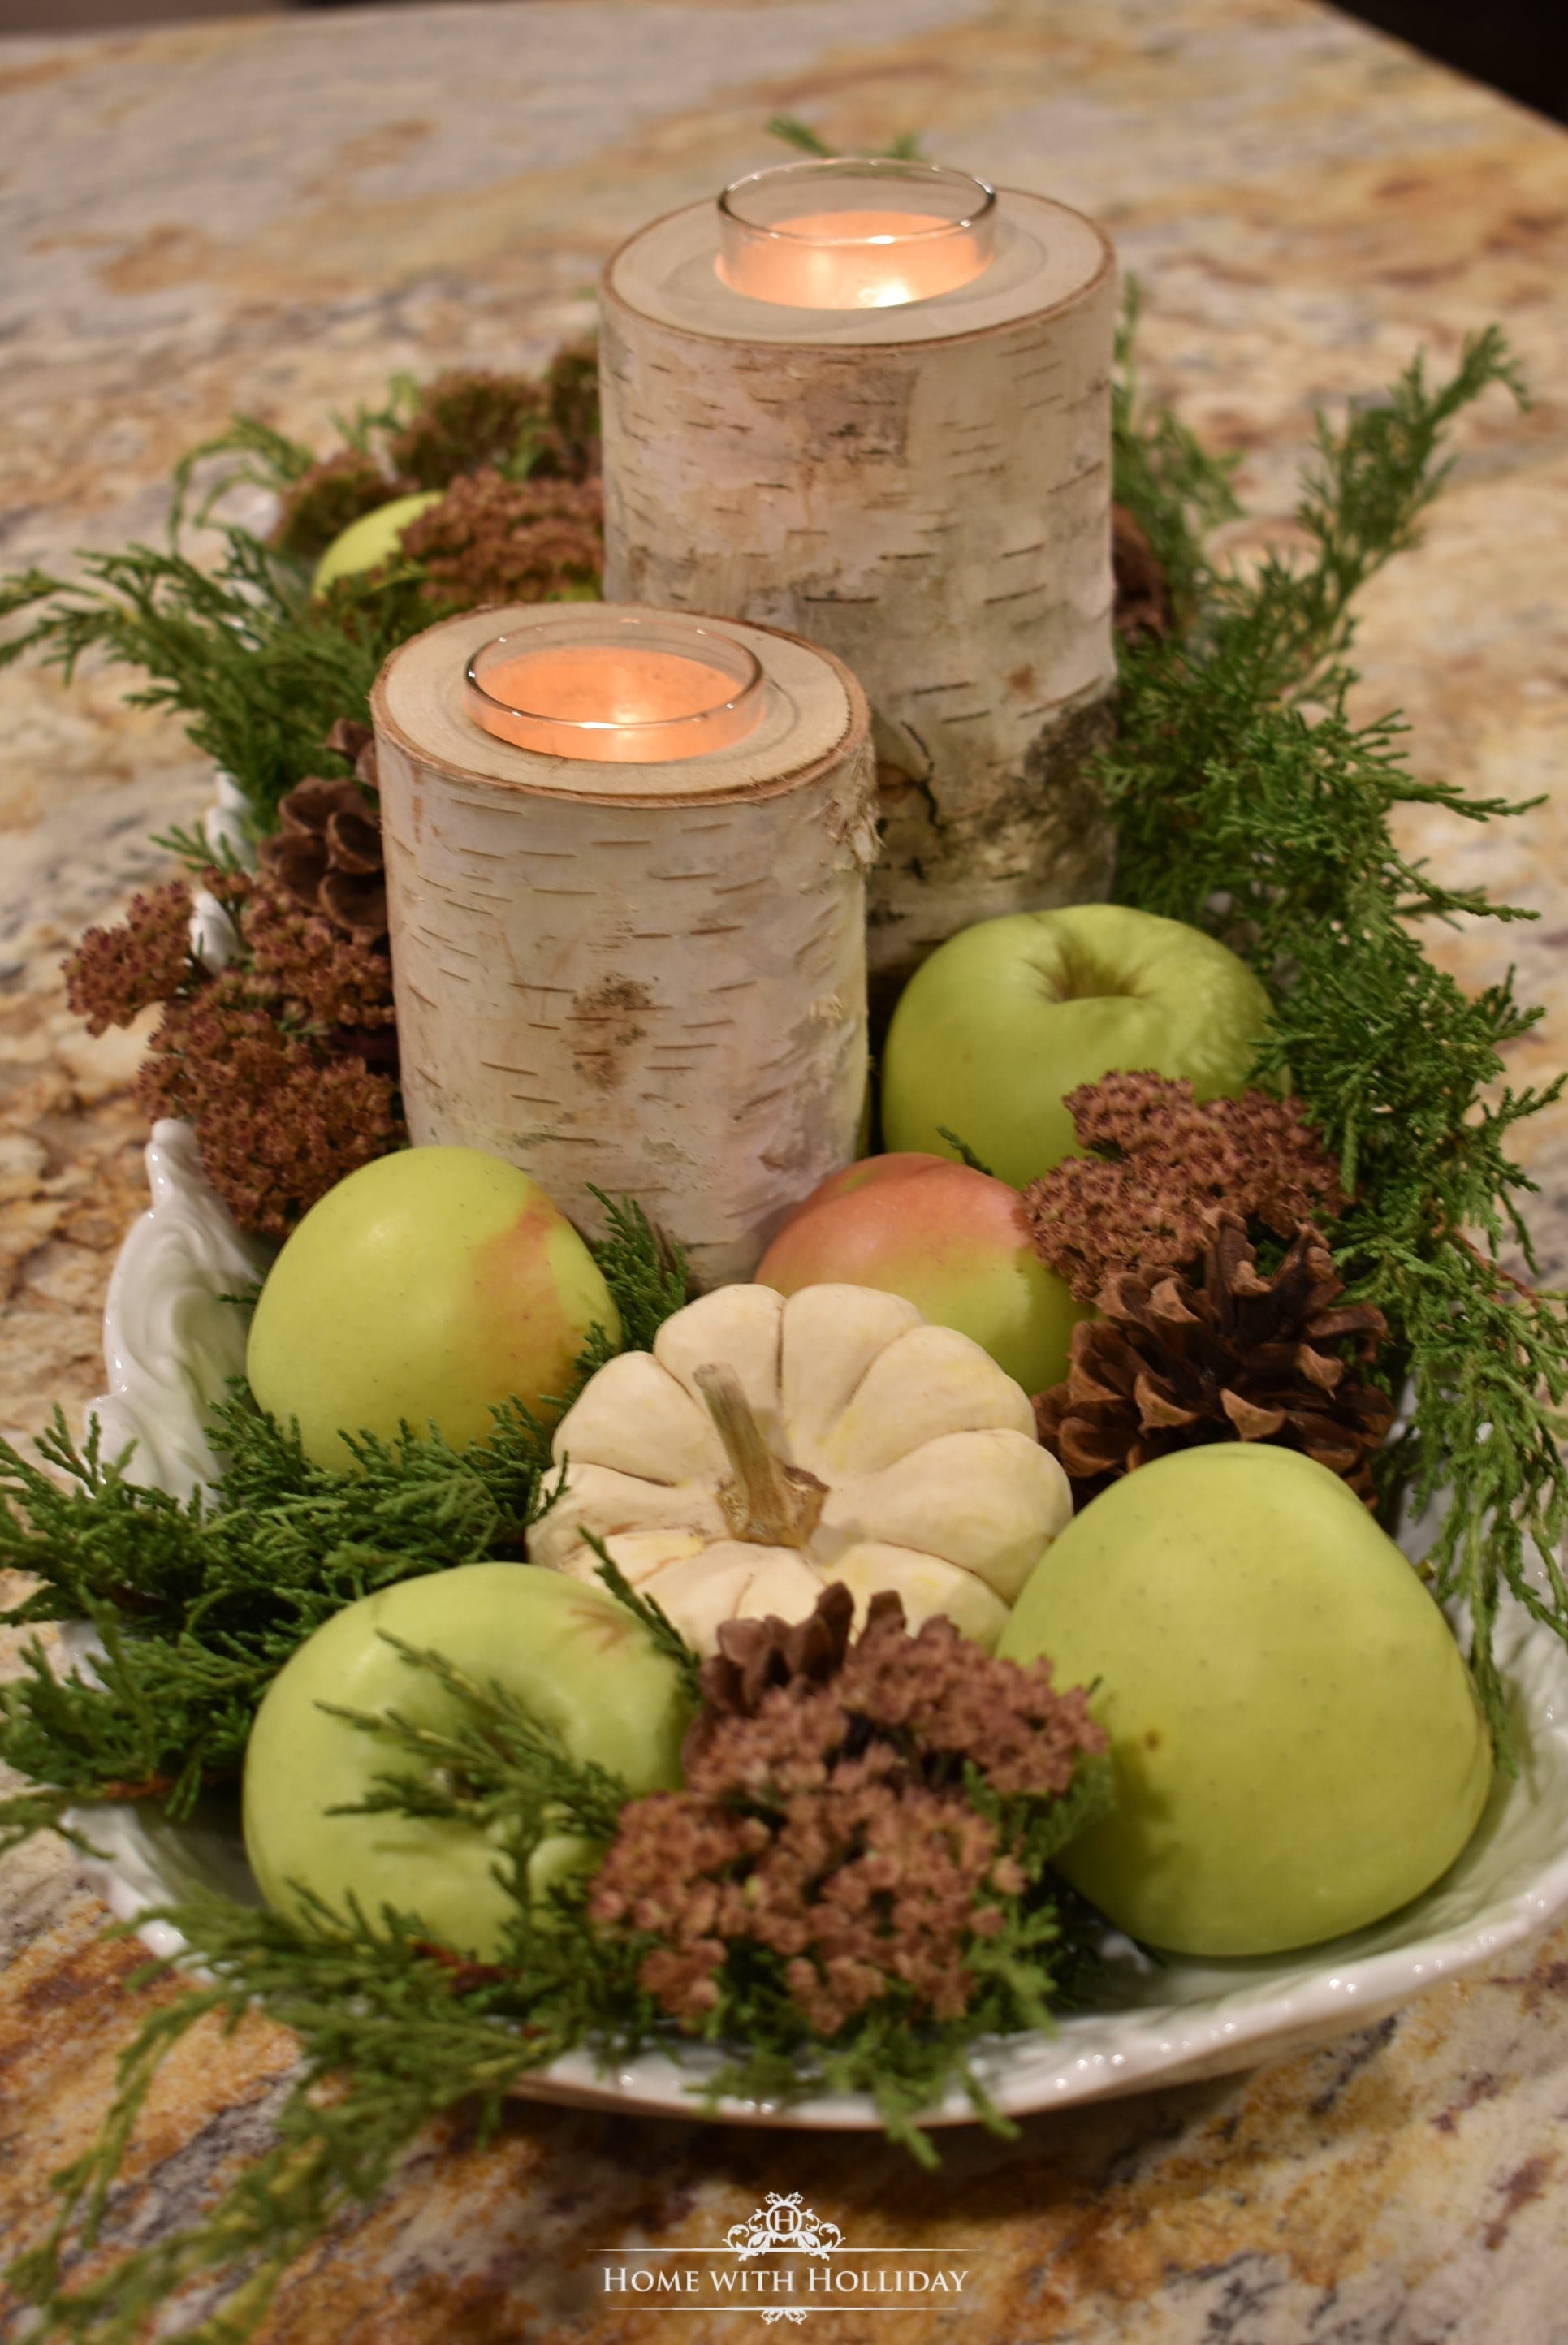 Fall table Centerpiece green apples tablescape nature entertaining table decor table setting hostess ideas using nature thanksgiving pumpkins flowers pine cones decor